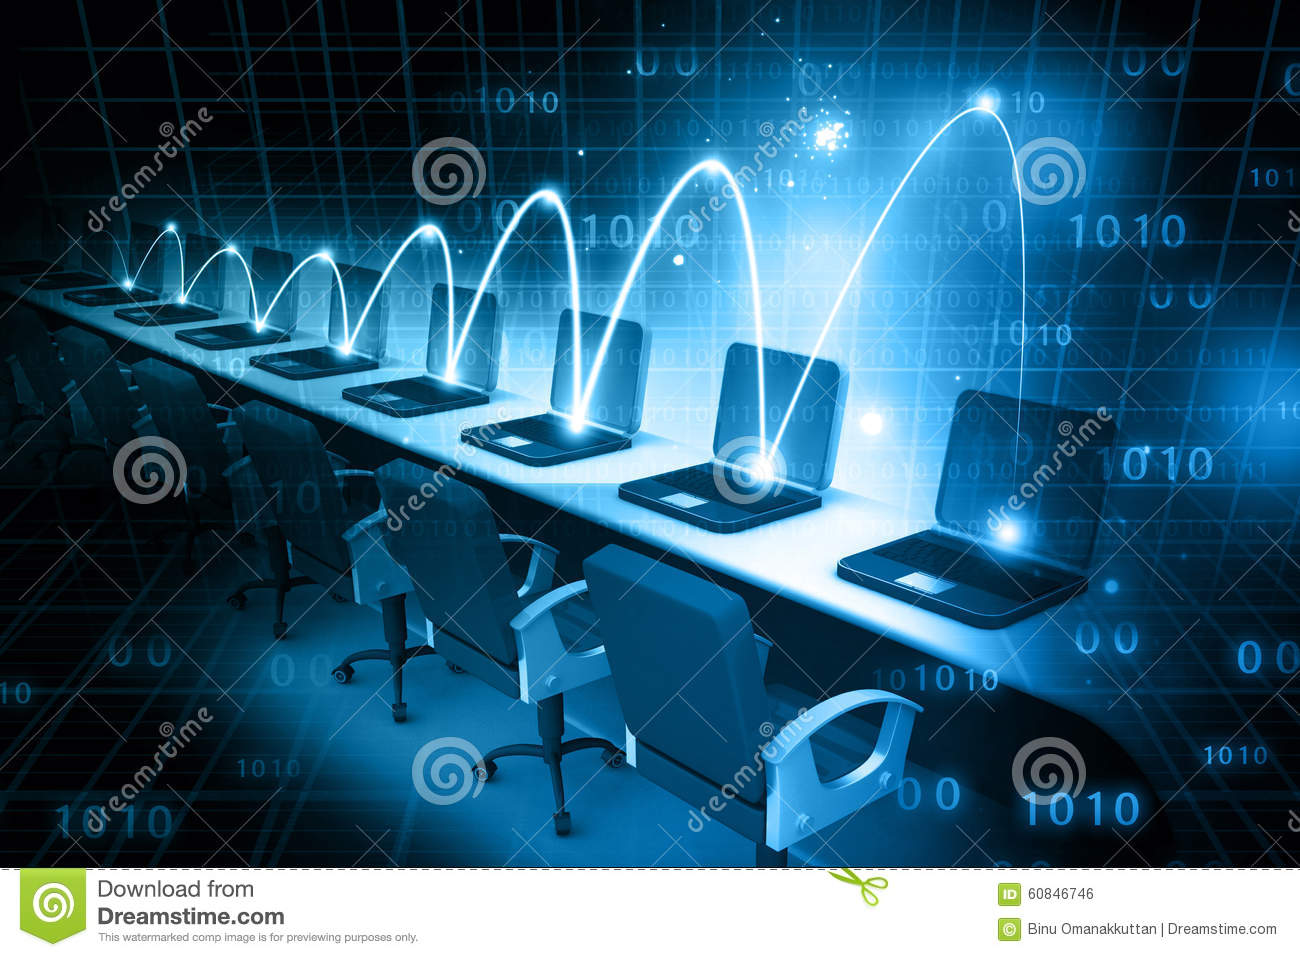 Global Computer network stock photo Image of futuristic